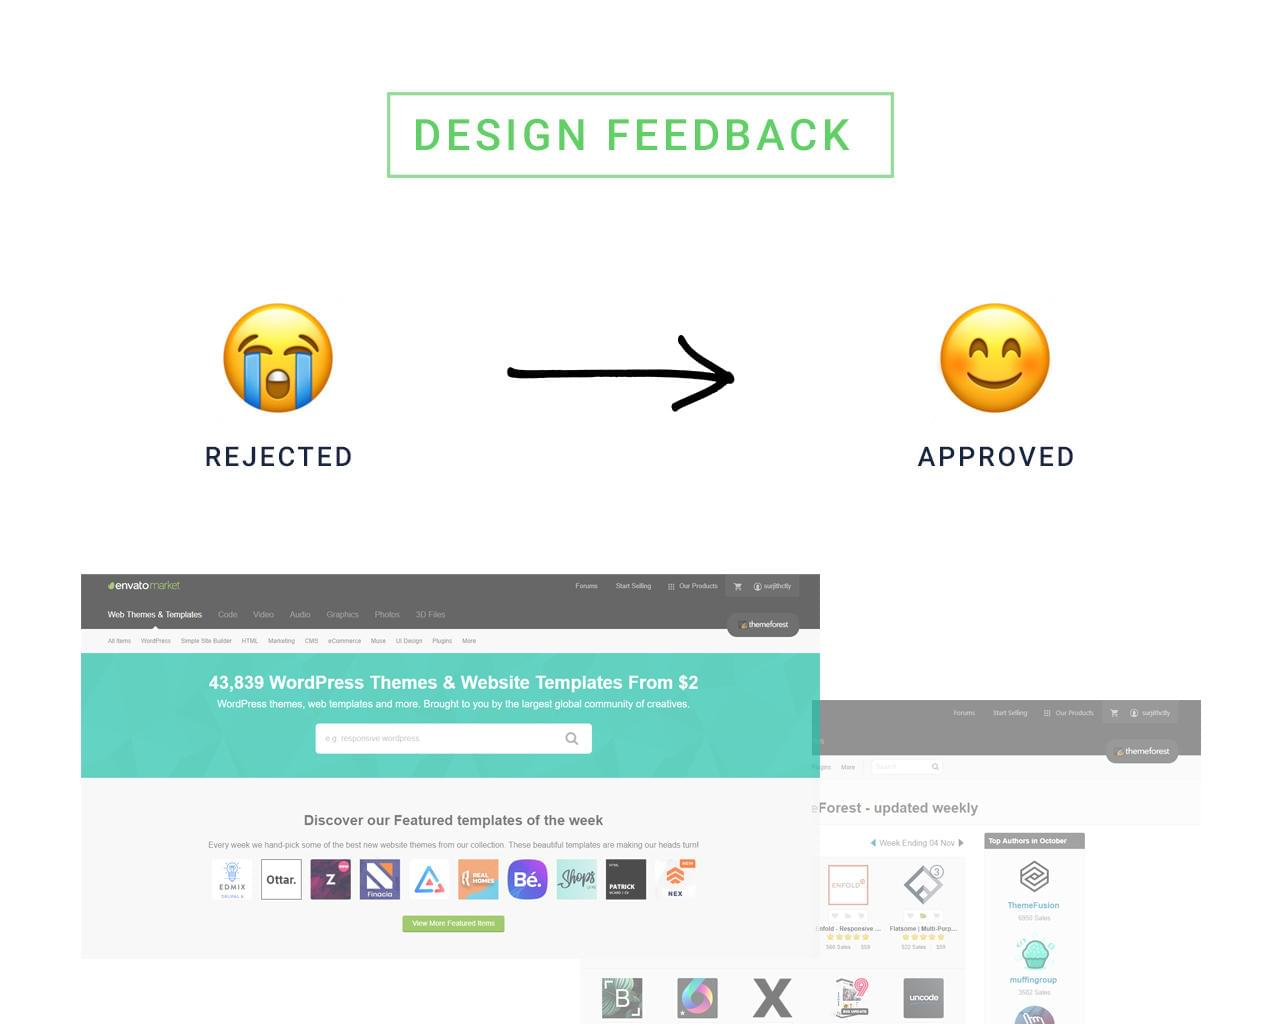 Design & HTML Feedback for Hard / Soft Rejected Themeforest Templates by surjithctly - 113940